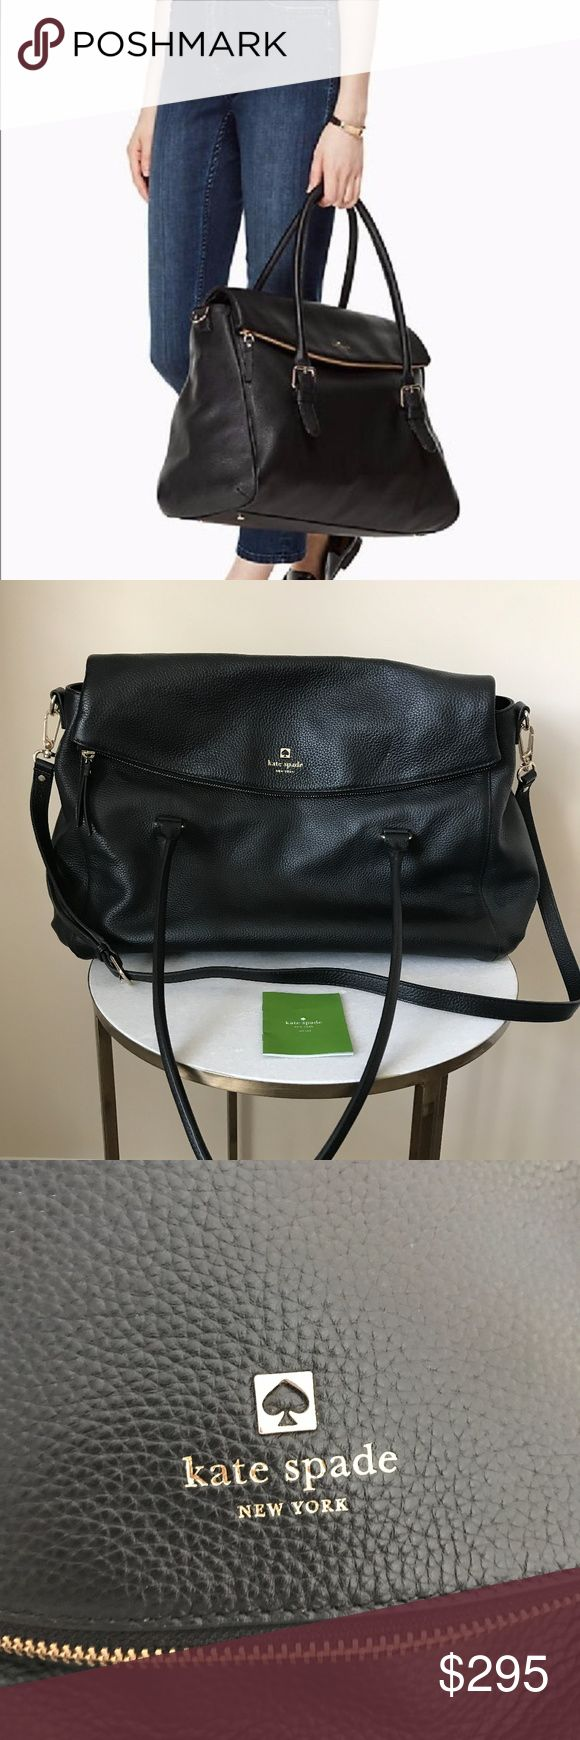 "Kate Spade Brighton Park Pebble Travel Leslie Kate Spade Brighton Park Pebble Travel Leslie Black Weekend/Travel Handbag- Black MSP $648  This Kate Spade Travel/Weekend bag features pebbled leather, capital kate jacquard lining, crossbody bag with magnetic snap closure and adjustable removable strap, interior zip & double slide pockets, flap zipper pocket. Measures 11.7""H x 19.5""W x 7""D, 16.75 handle drop, 33.5 total strap.  Gorgeous Travel/weekend bag.  Used only once.  Purchased directly…"